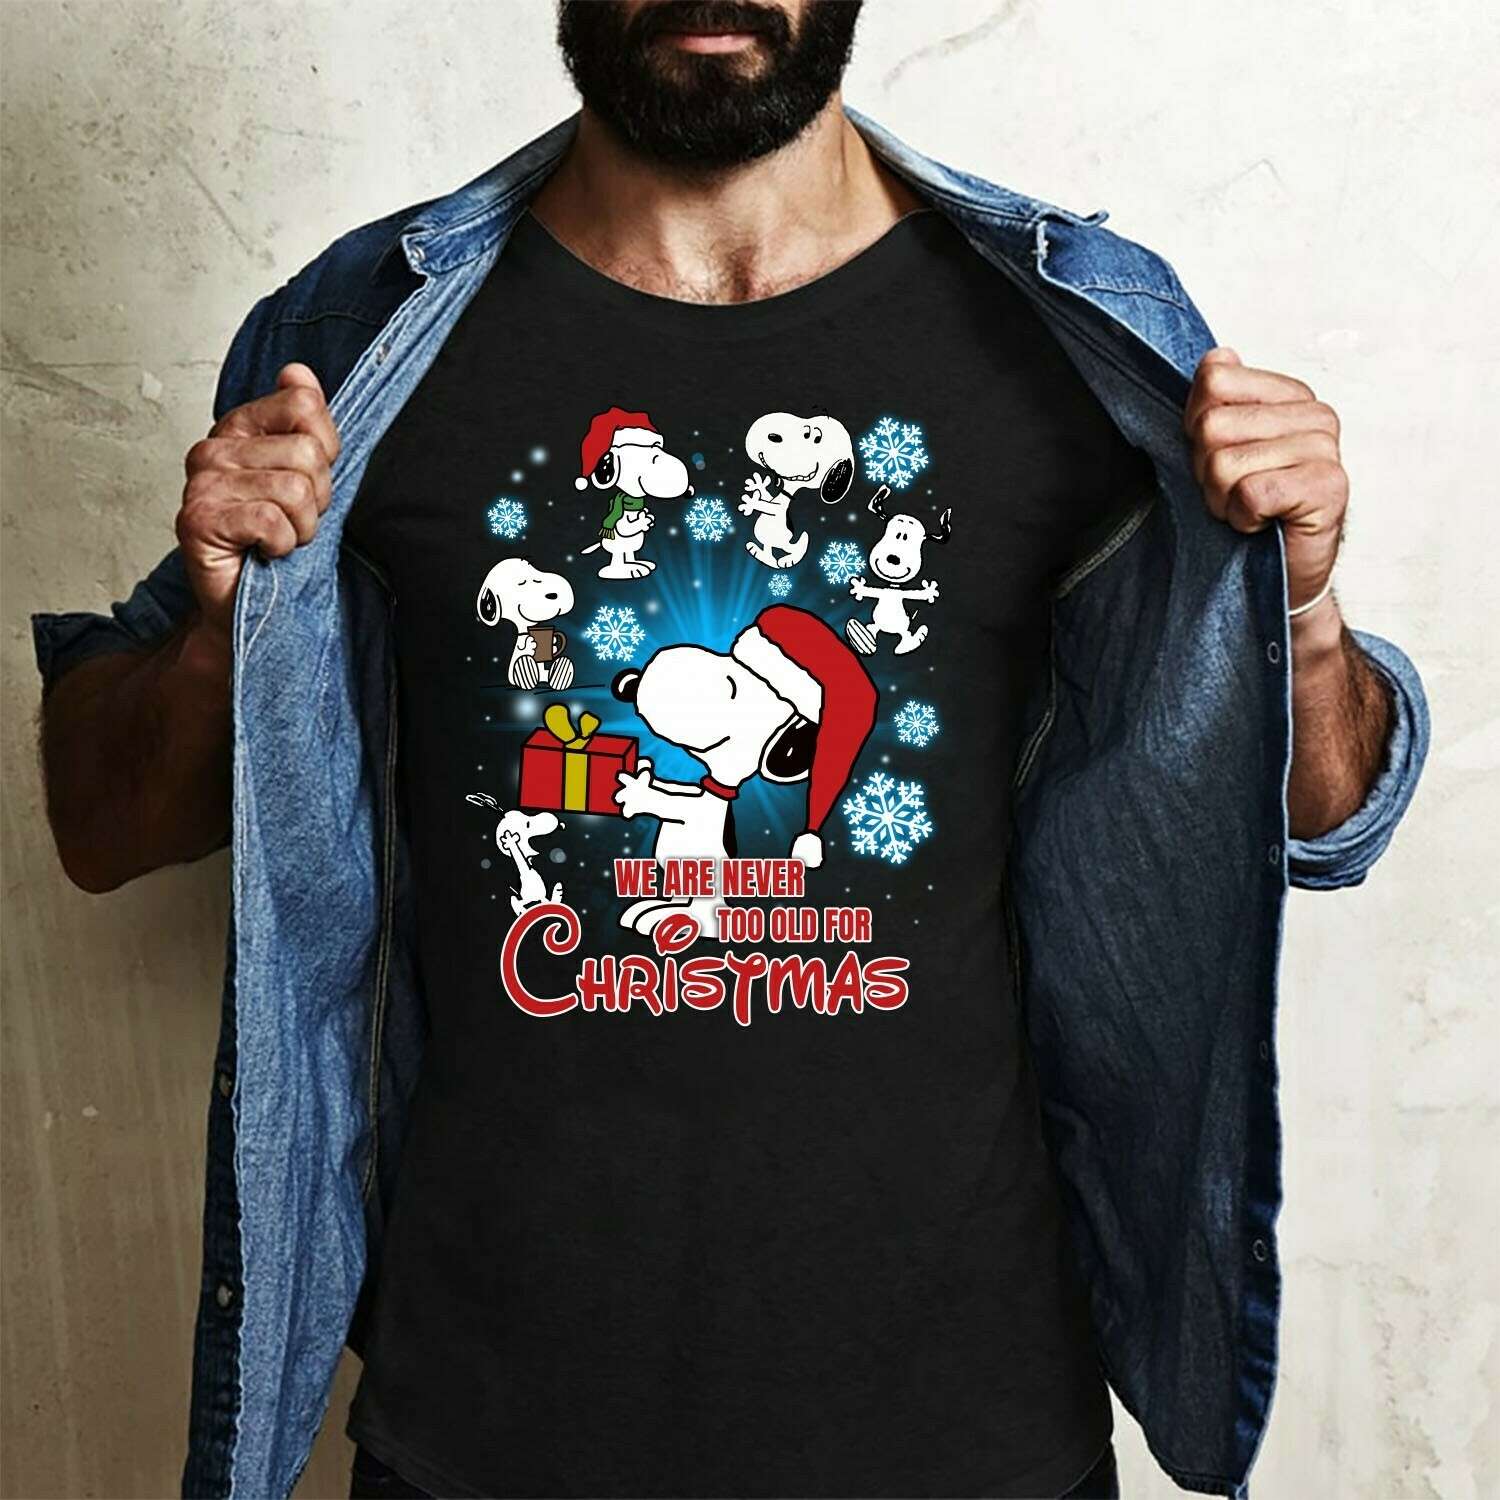 We Are Never Too Old For Christmas Dabbing Snoopy Cricut Silhouette Ugly Snoopy And Friends Christmas Snoopy Woodstock Charlie Brown T-Shirt Long Sleeve Sweatshirt Hoodie Jolly Family Gifts